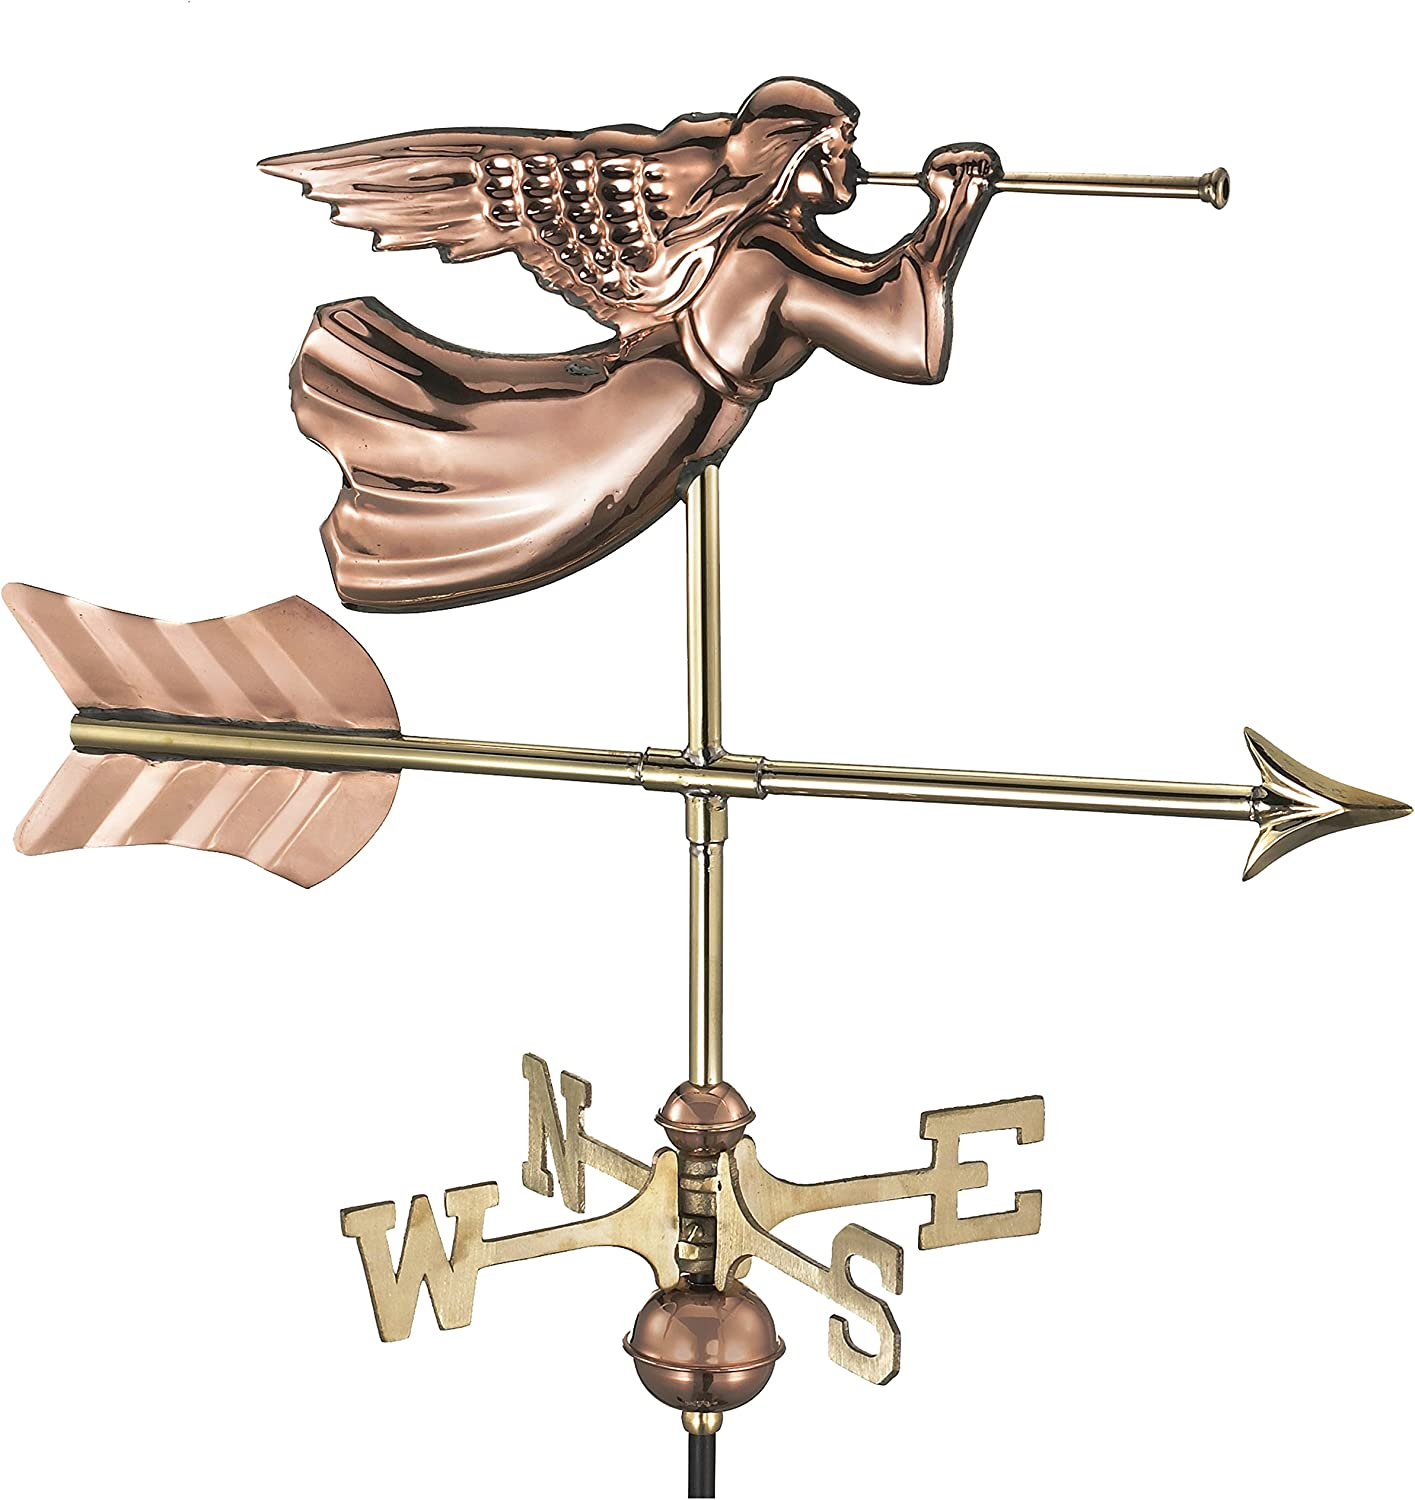 Good Directions 819PG Angel Garden Weathervane, Polished Copper with Garden Pole